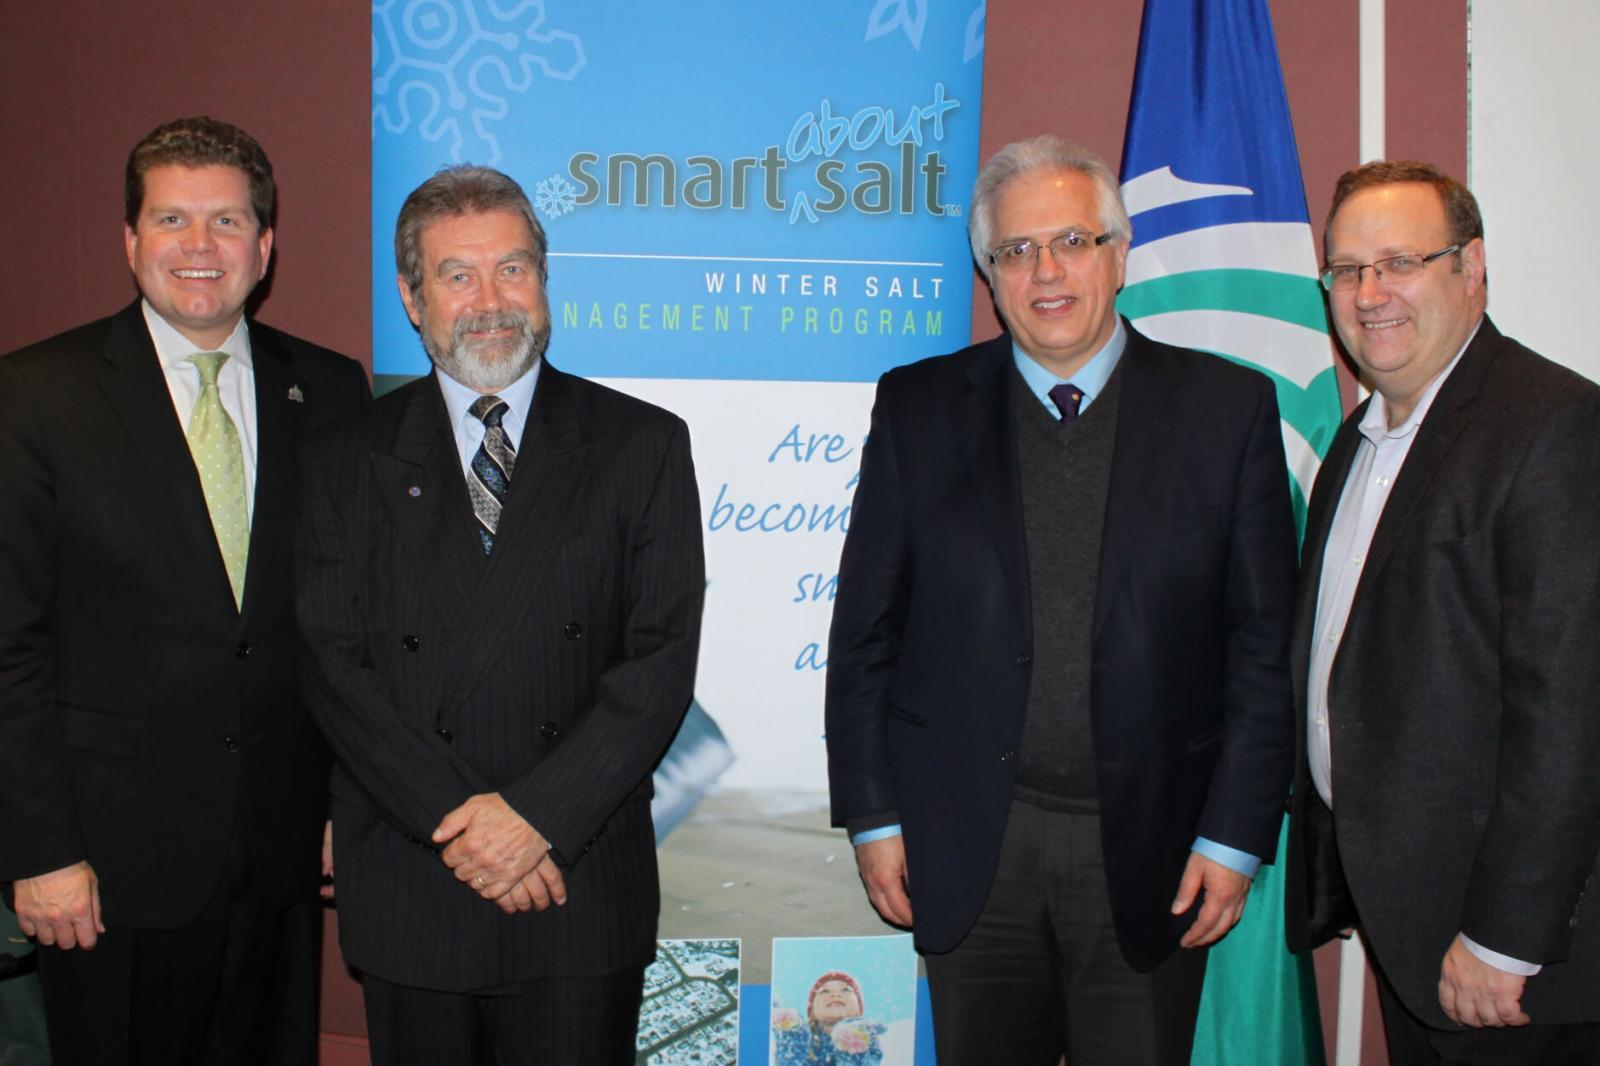 From left, Ottawa Councillor Steve Desroches, Bob Hodgins, Smart about Salt, Tony DiGiovanni, and Dean Karakasis, BOMA, after a successful Smart About Salt Summit.